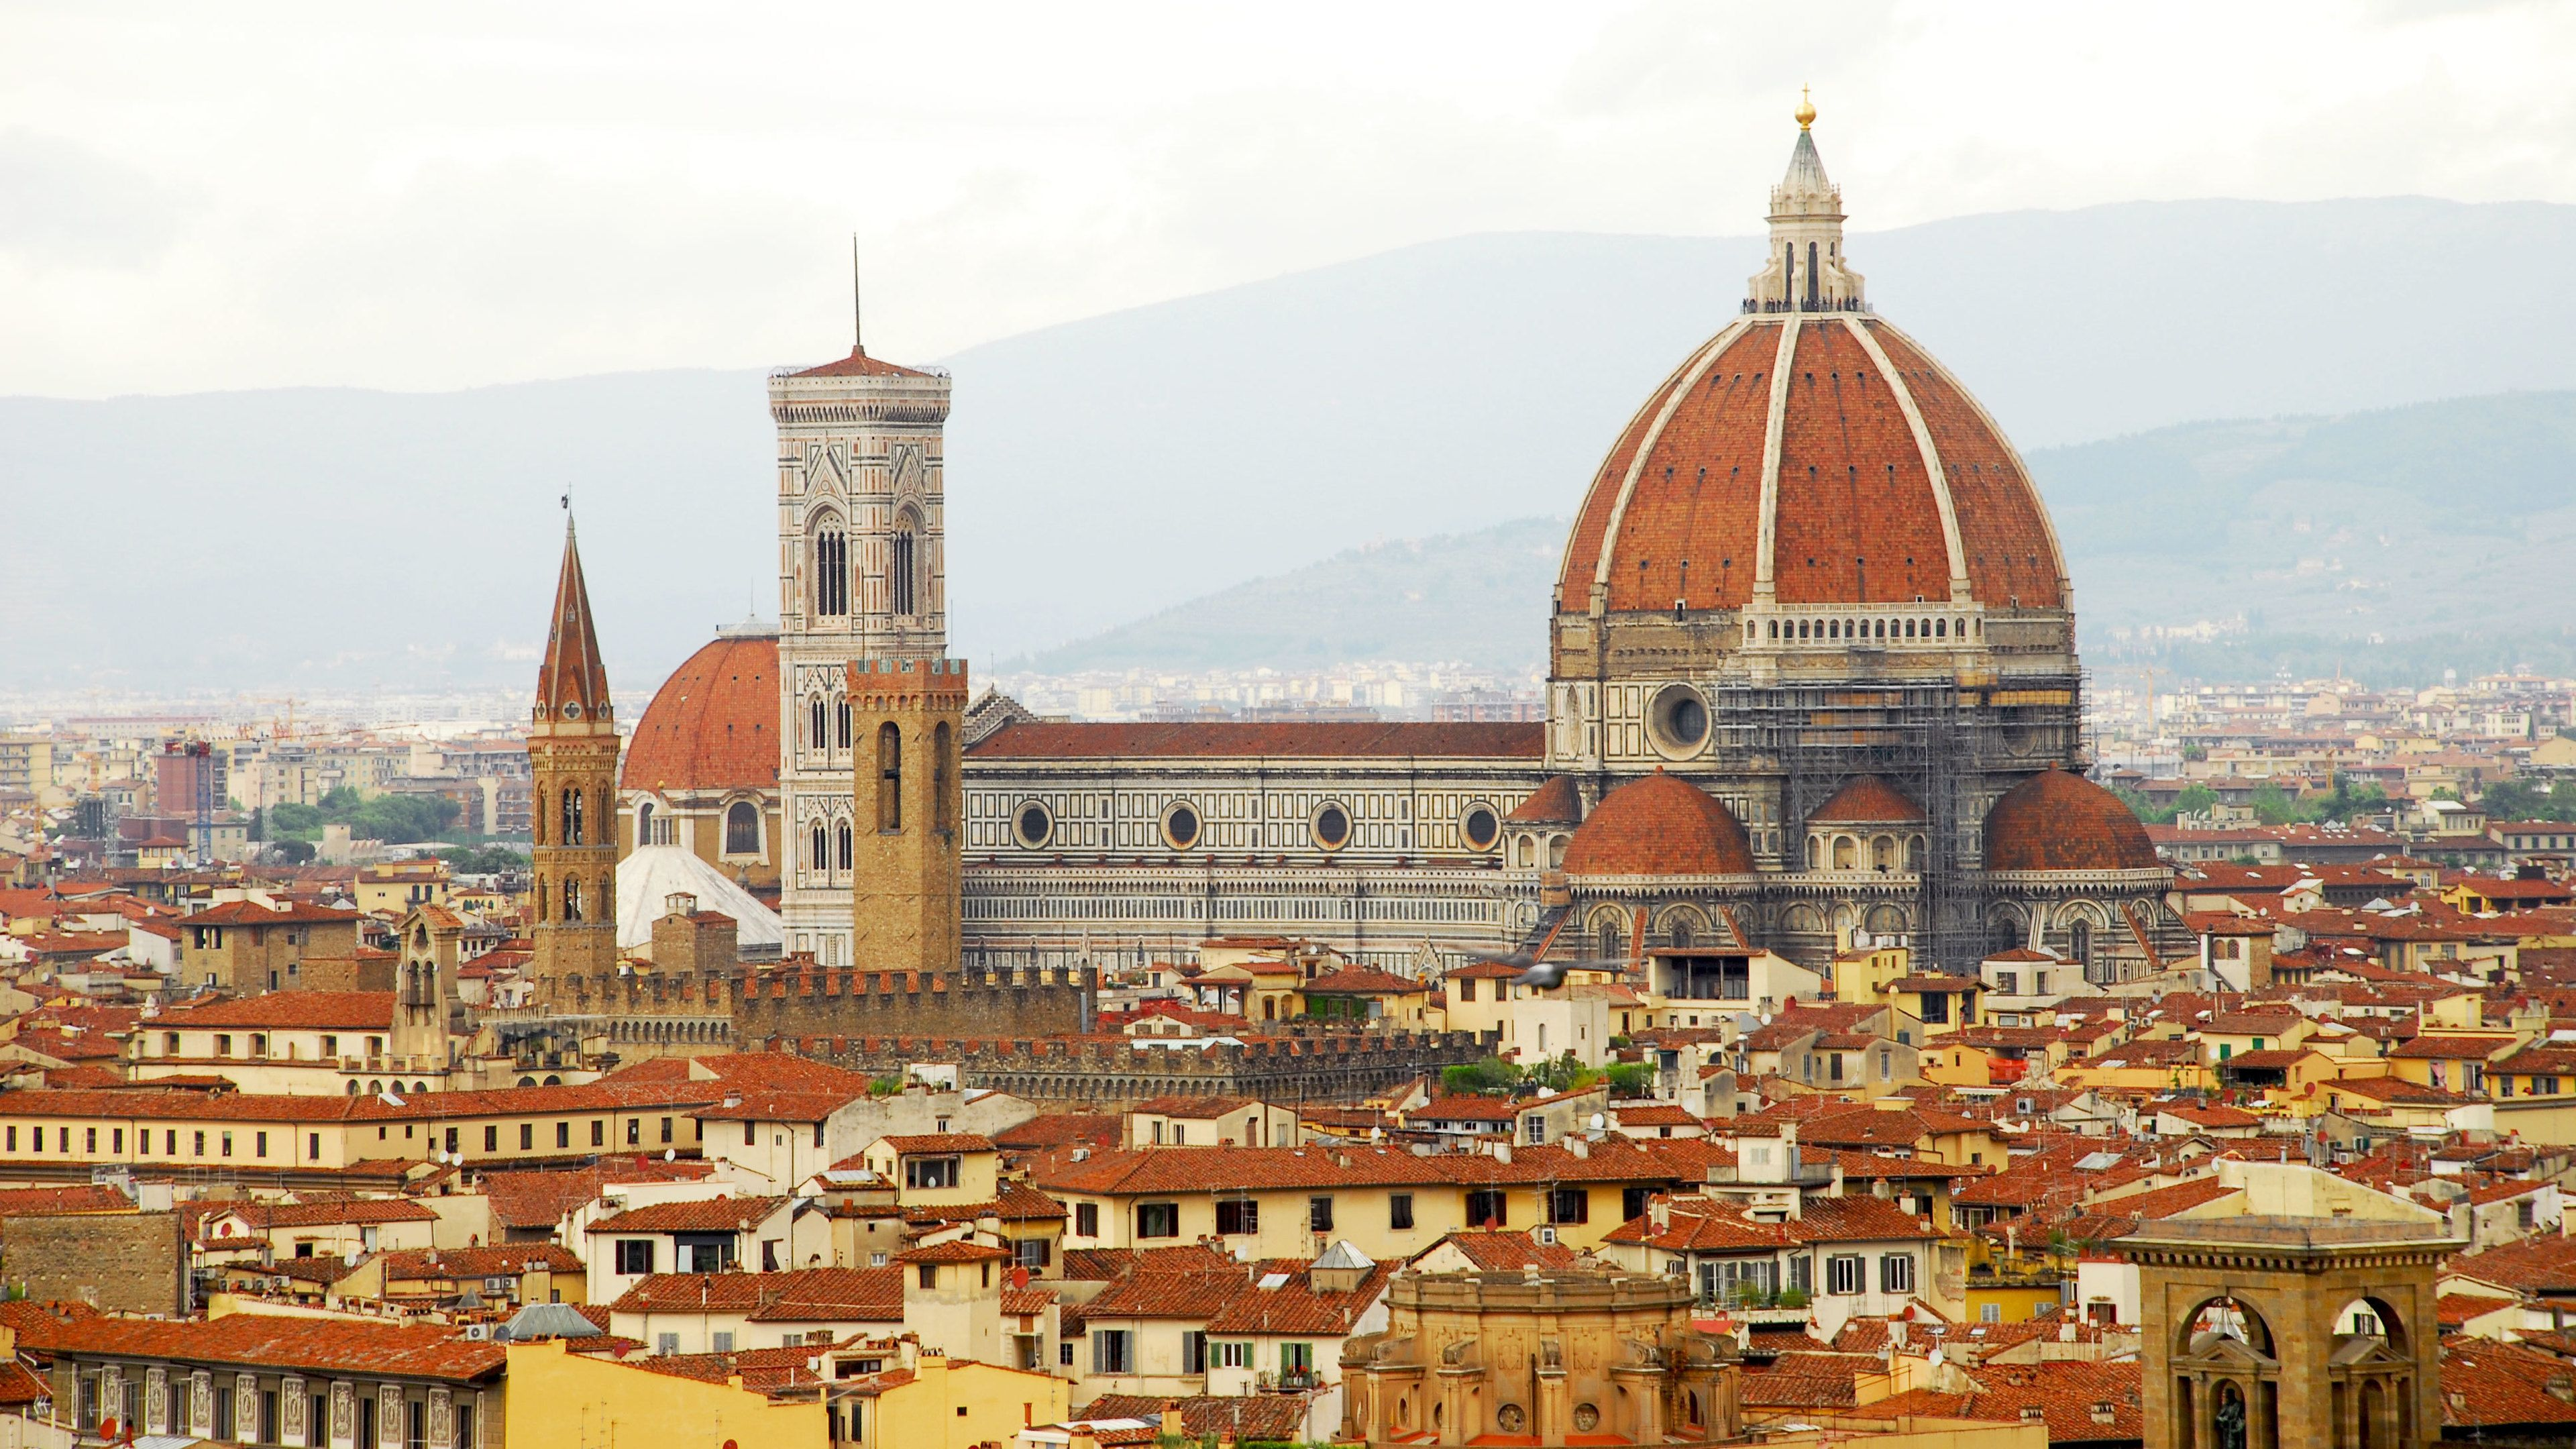 Panoramic view of the Piazzale Michelangelo in Florence